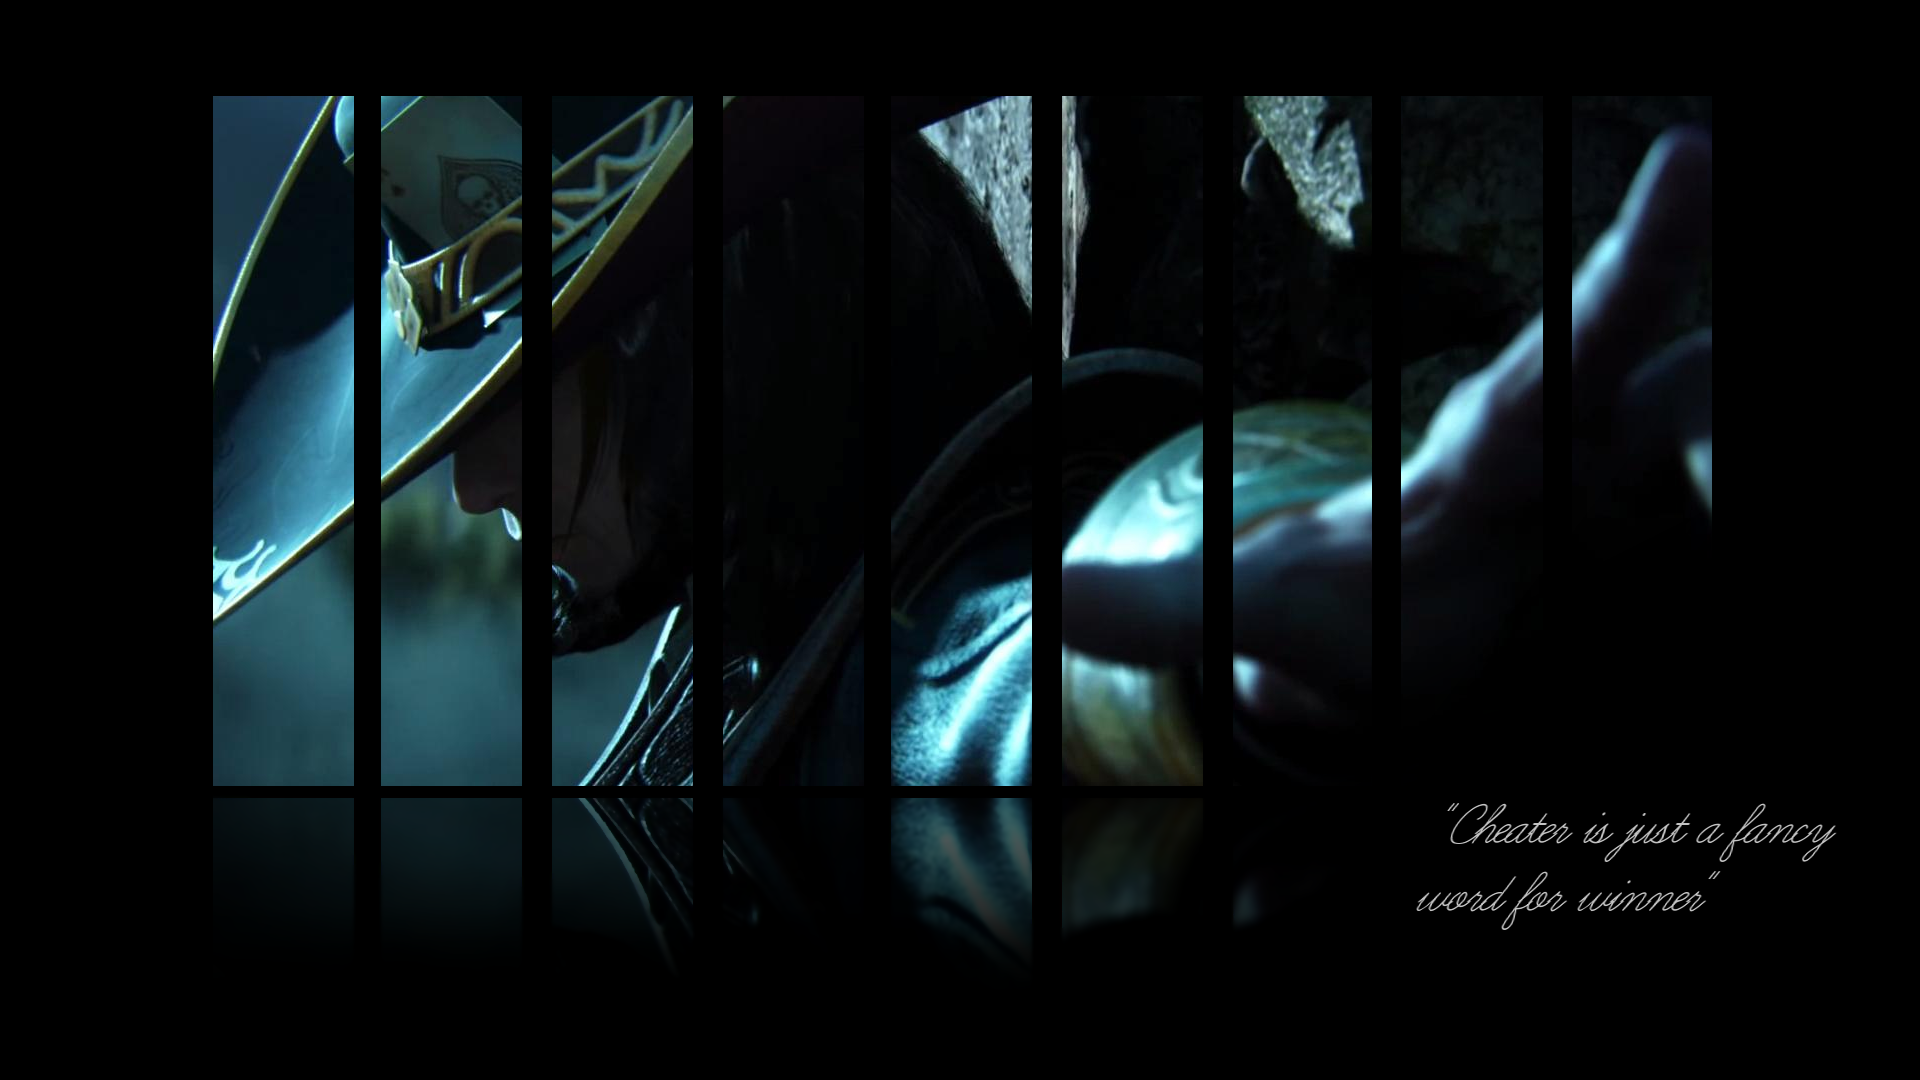 Free Download Twisted Fate Wallpaper I Made When I Got Bored